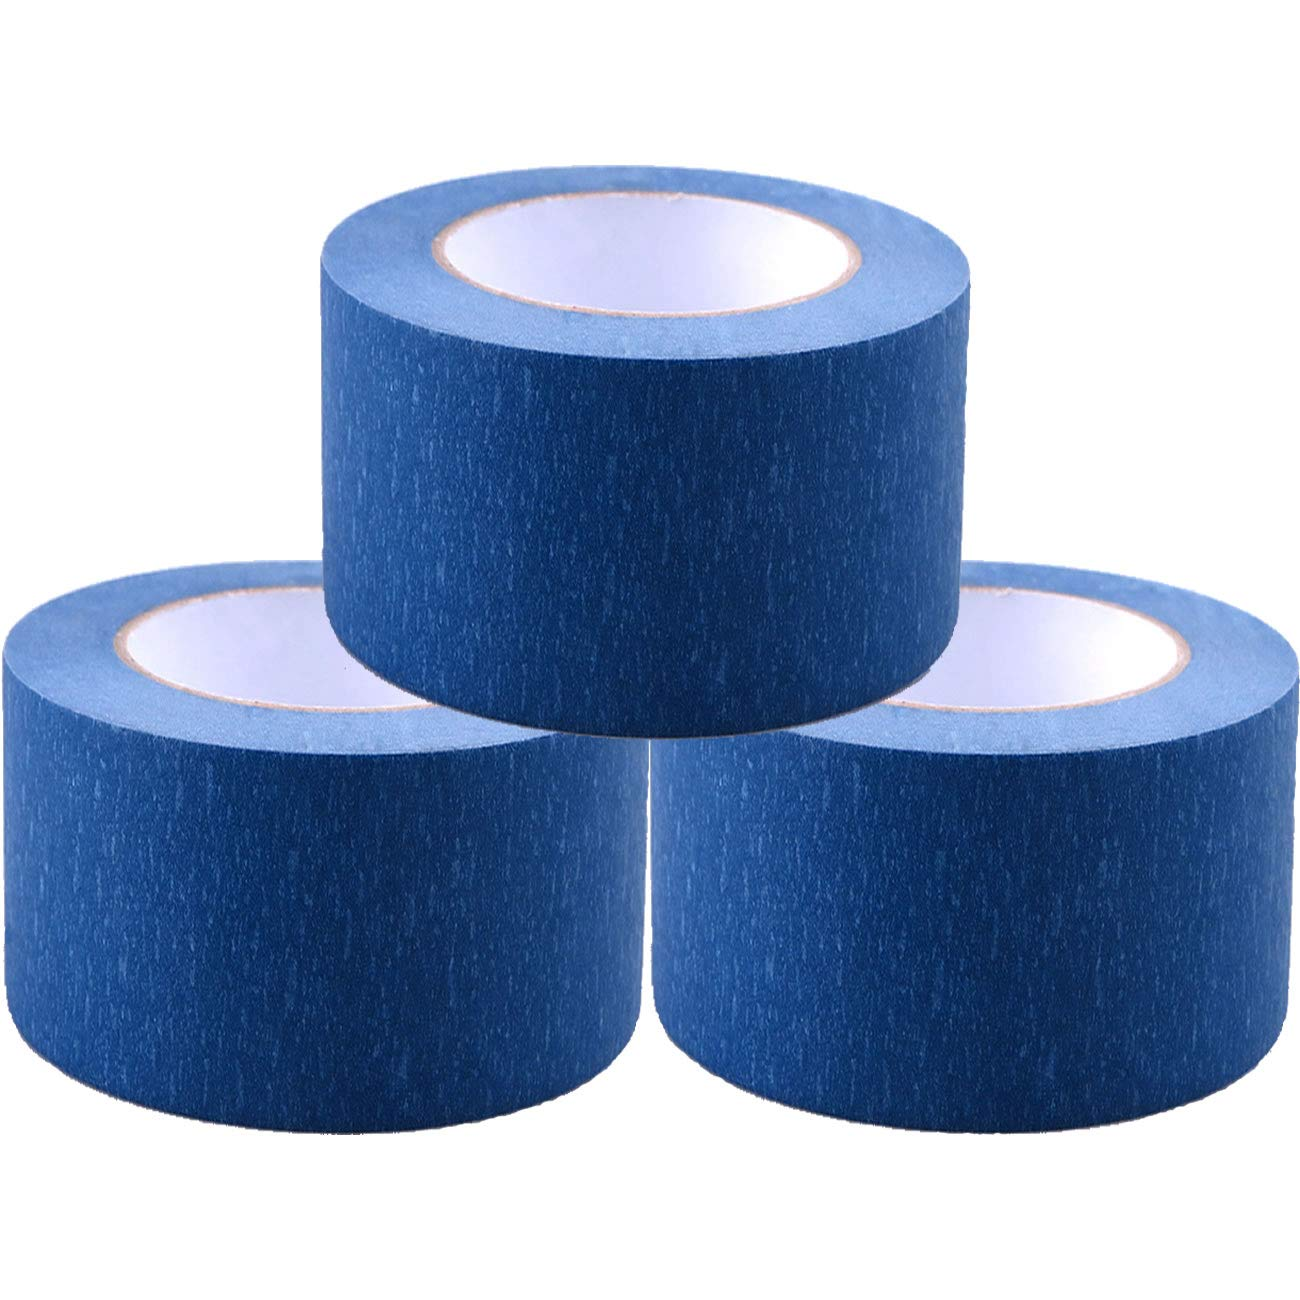 Painters Tape 3pk 2'' x 60 yd | Professional Blue Painters Masking Tape | Easy and Clean Removal | Multi Surface Use | ISO 9001 Worldwide Quality | Leaves No Residue Behind | (48mm .1.88in) (3 Pack)